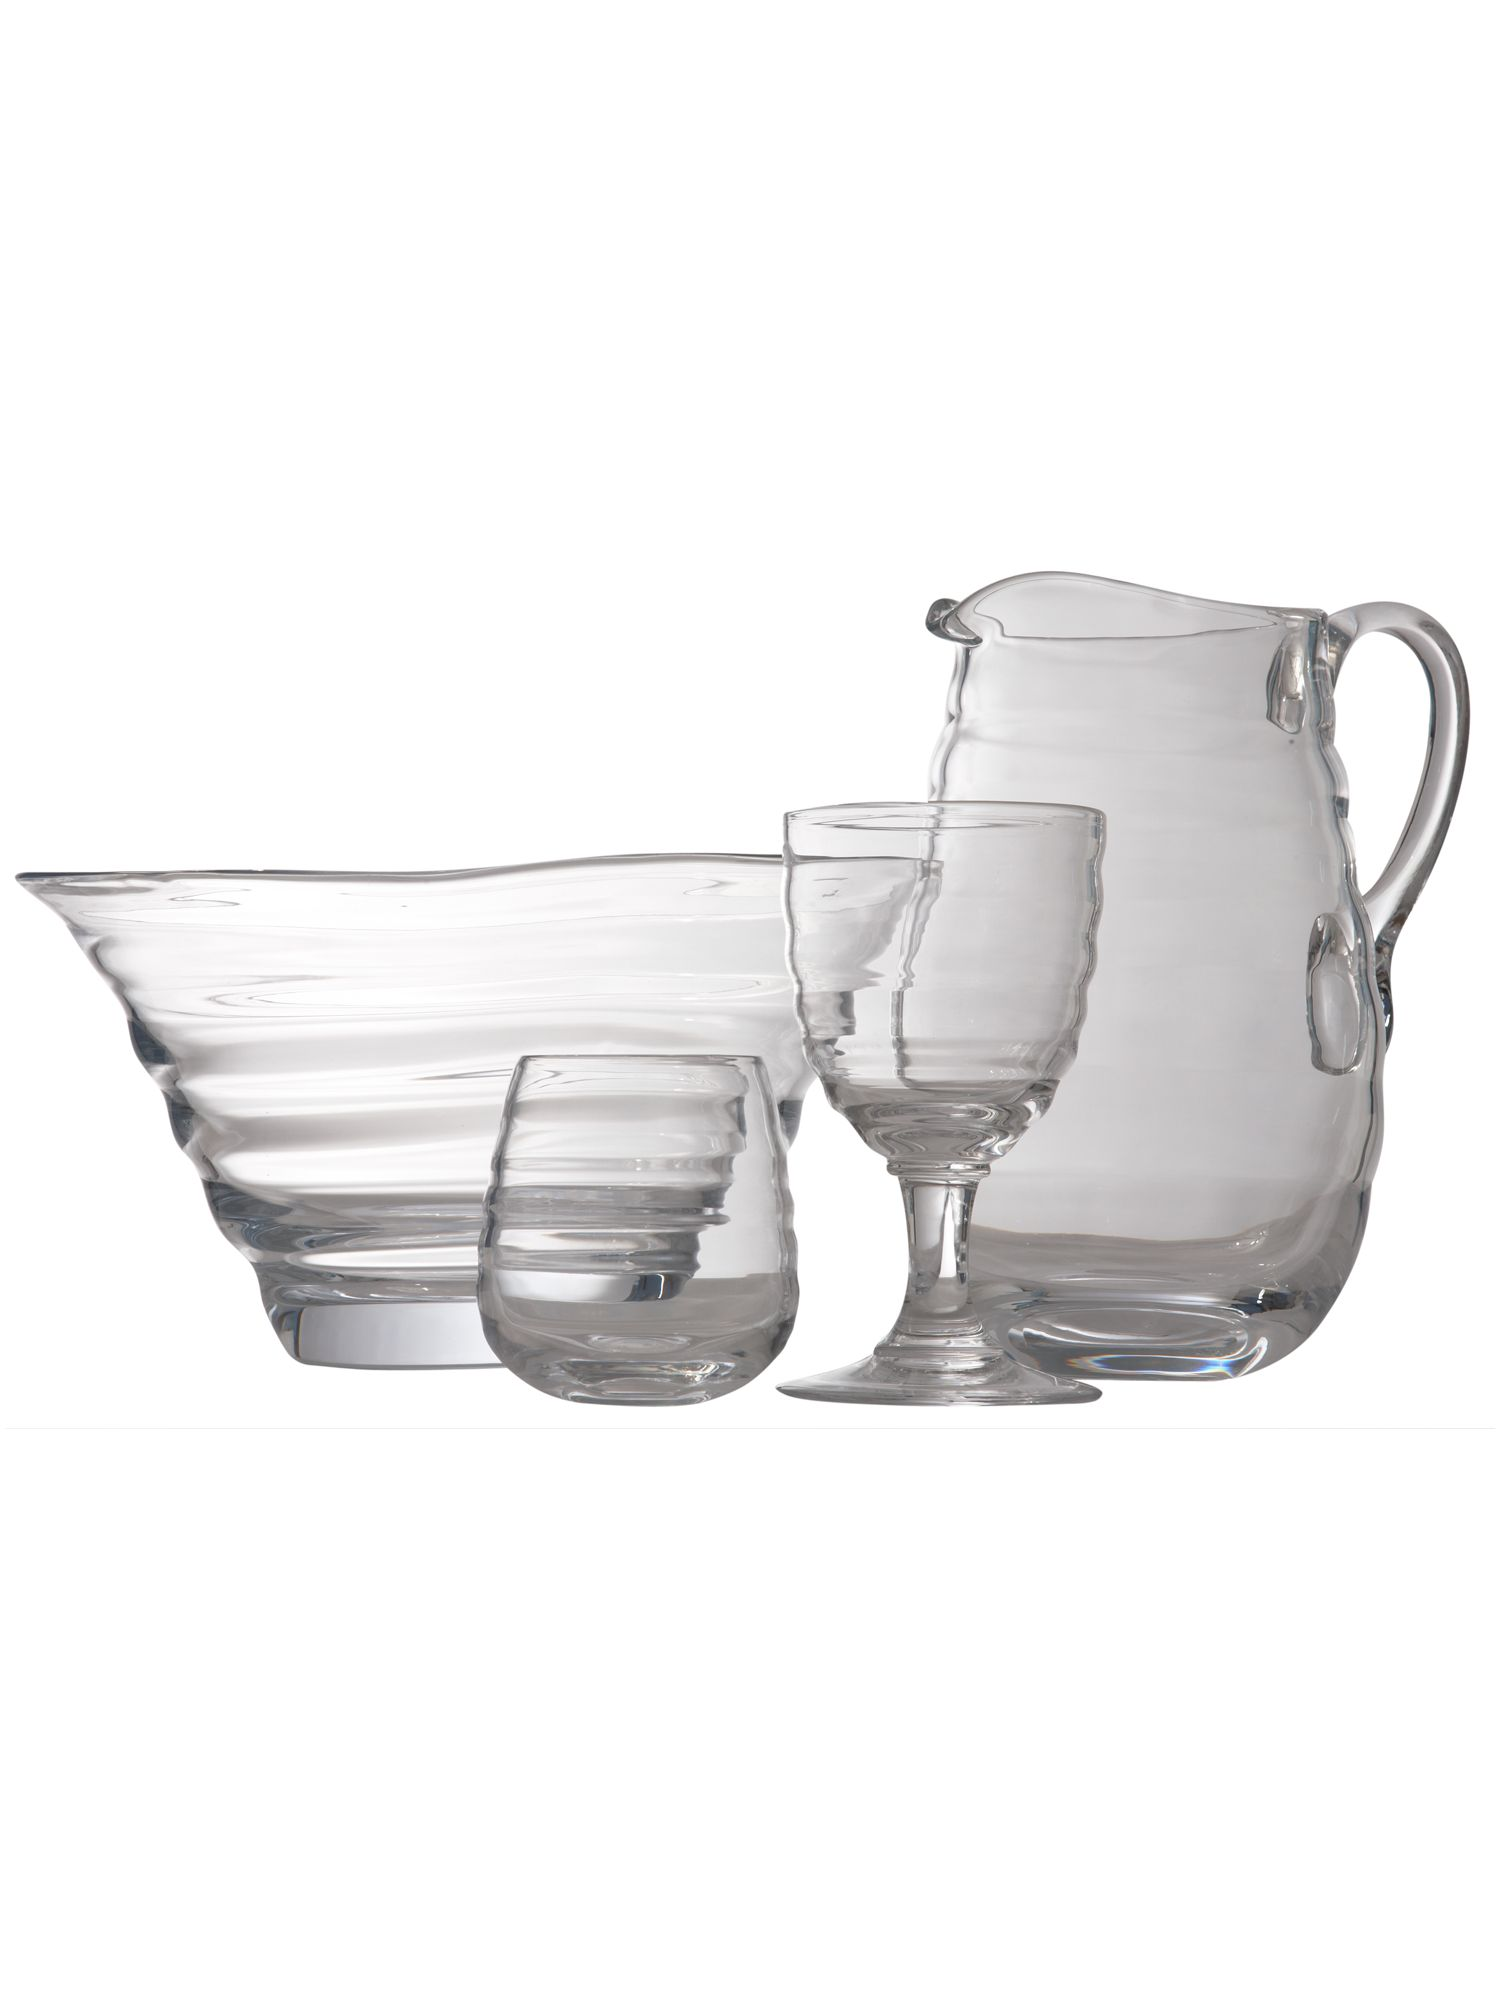 Portmeirion Large glass jug with handle